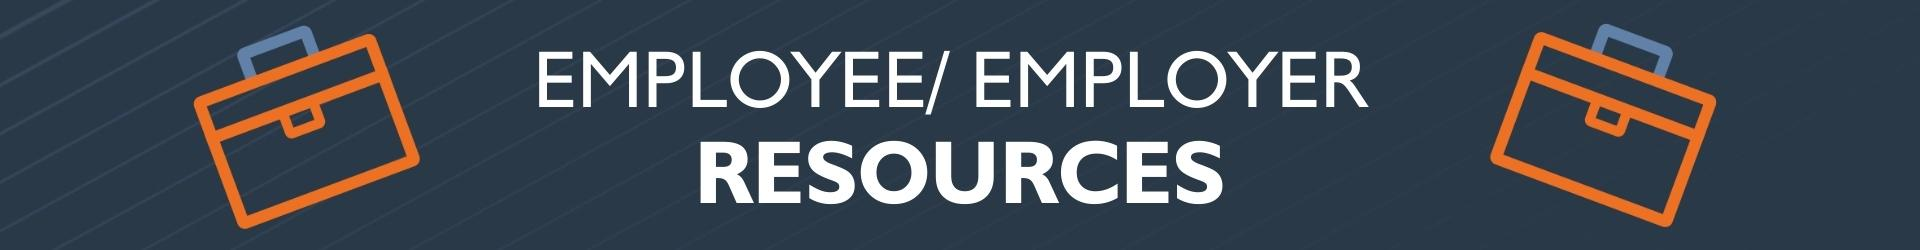 Employee And Employer Resources Banner Related To Making It Work Series 2